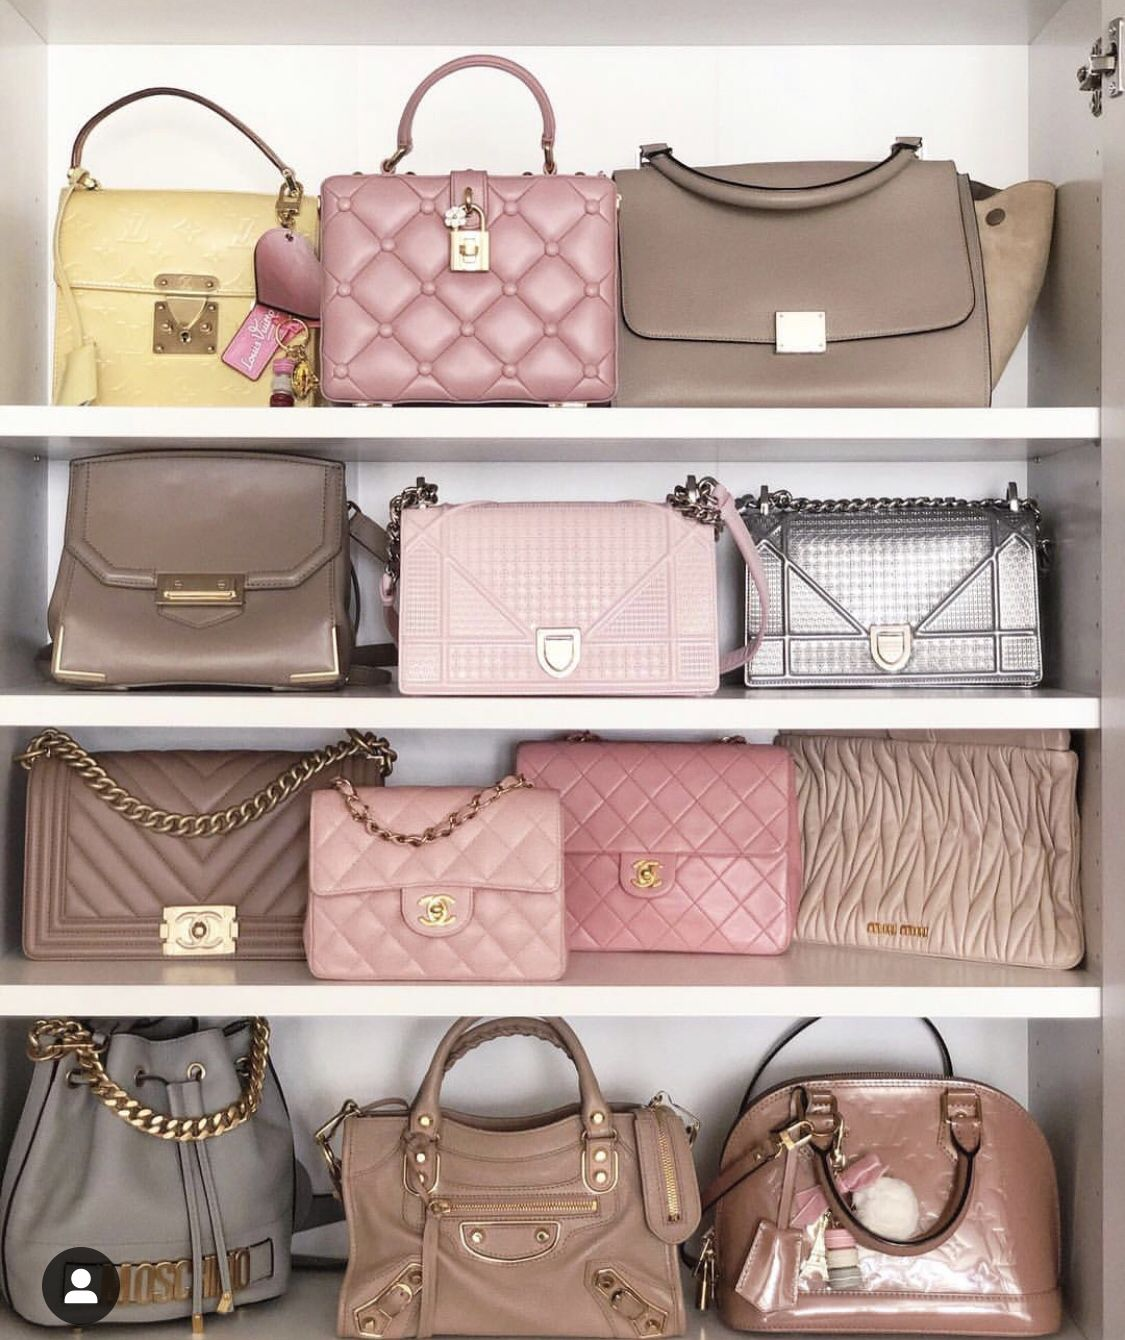 544073152cb5 Luxury Bag Collection | Cute bags and purses in 2019 | Bags, Luxury ...